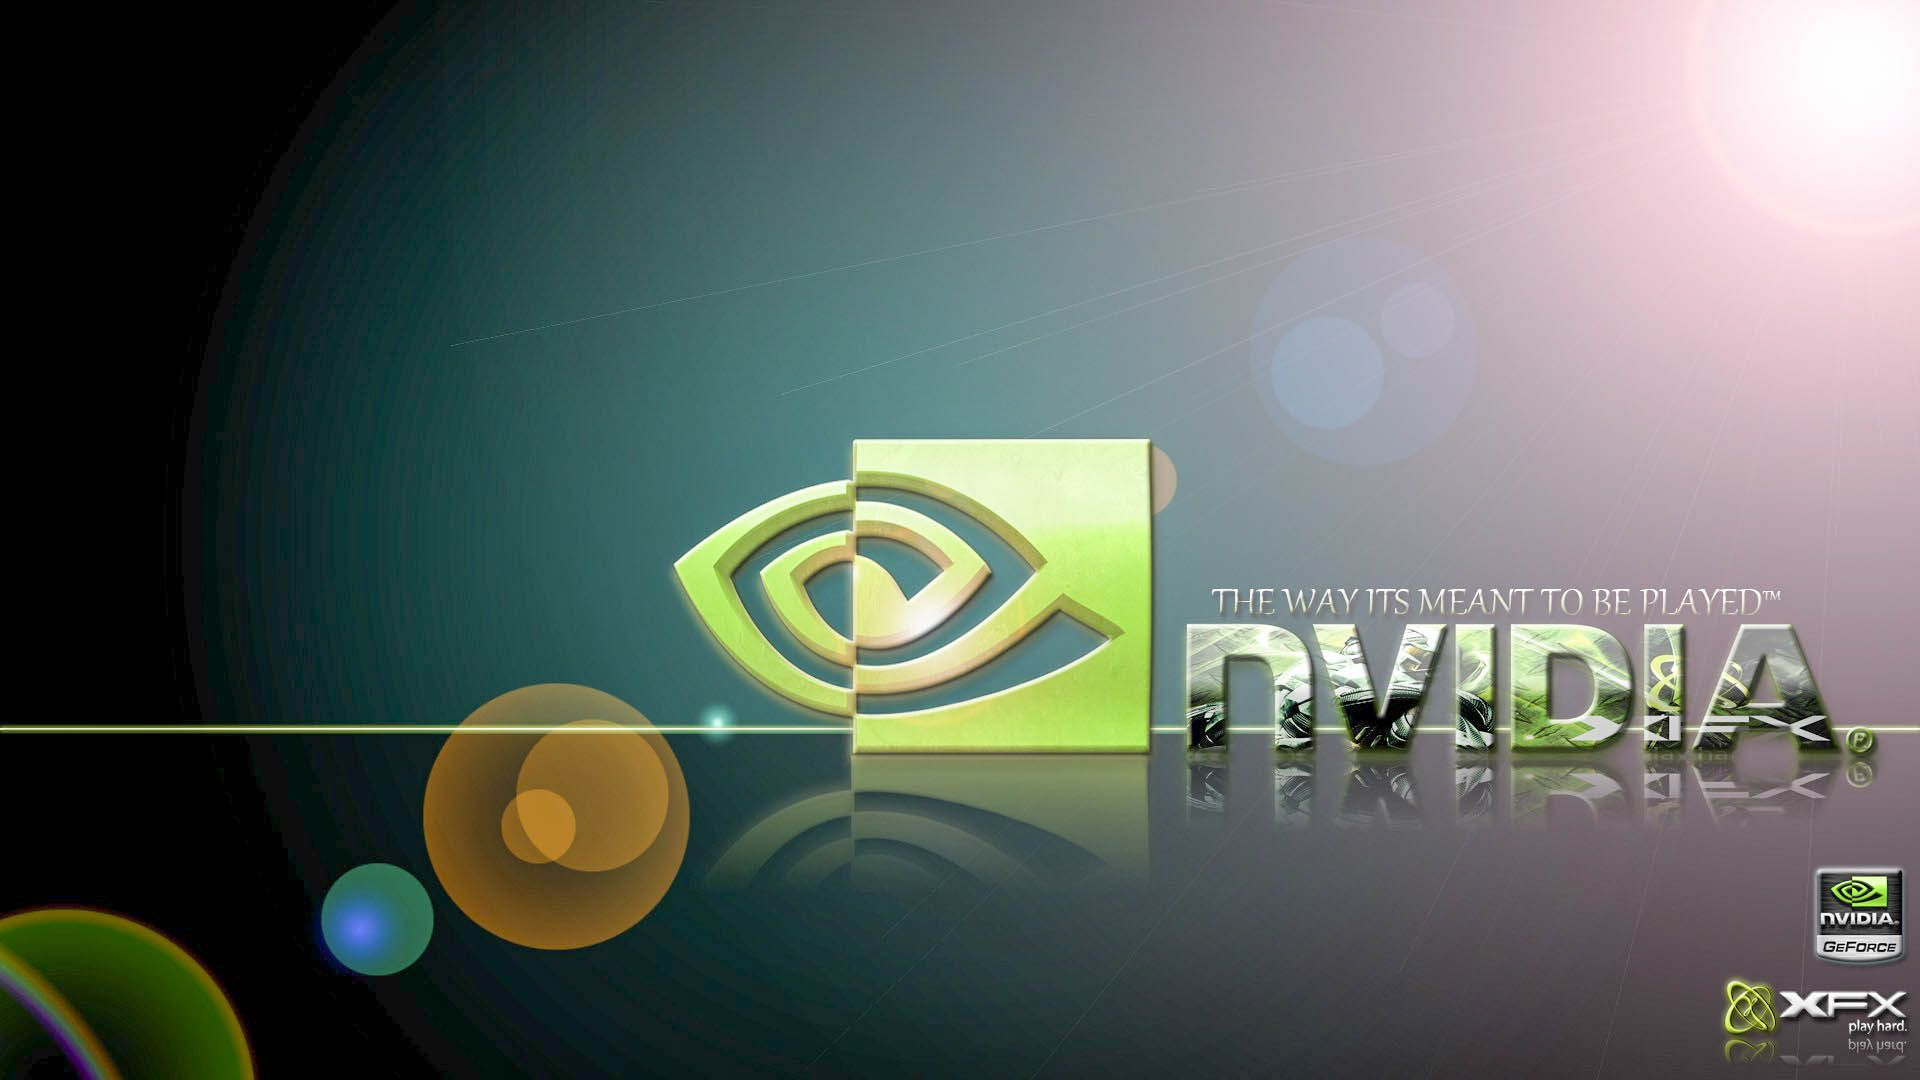 Nvidia Hd Desktop Backrounds High Definition All Hd Wallpapers Nvidia Graphic Card All Hd Wallpaper